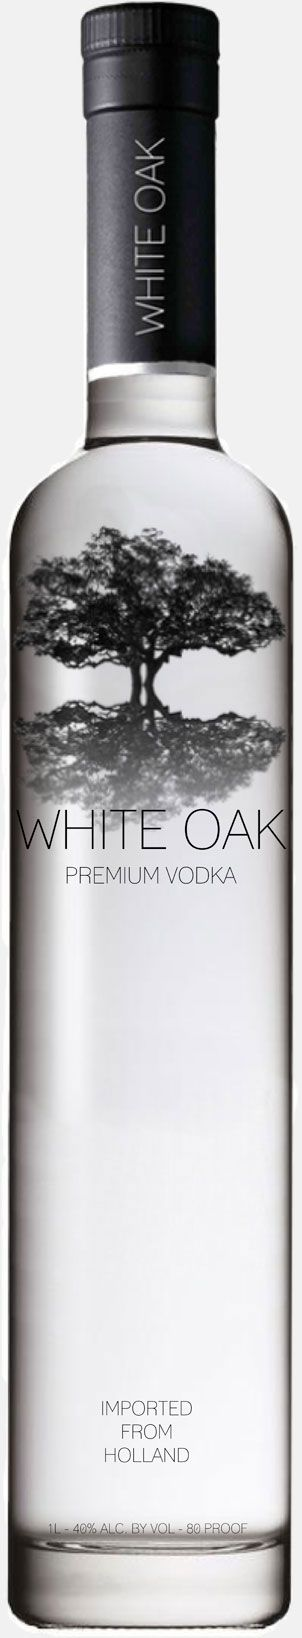 White Oak Premium Vodka. But they will be changing their name son due to a conflict with wines of the same name. PD